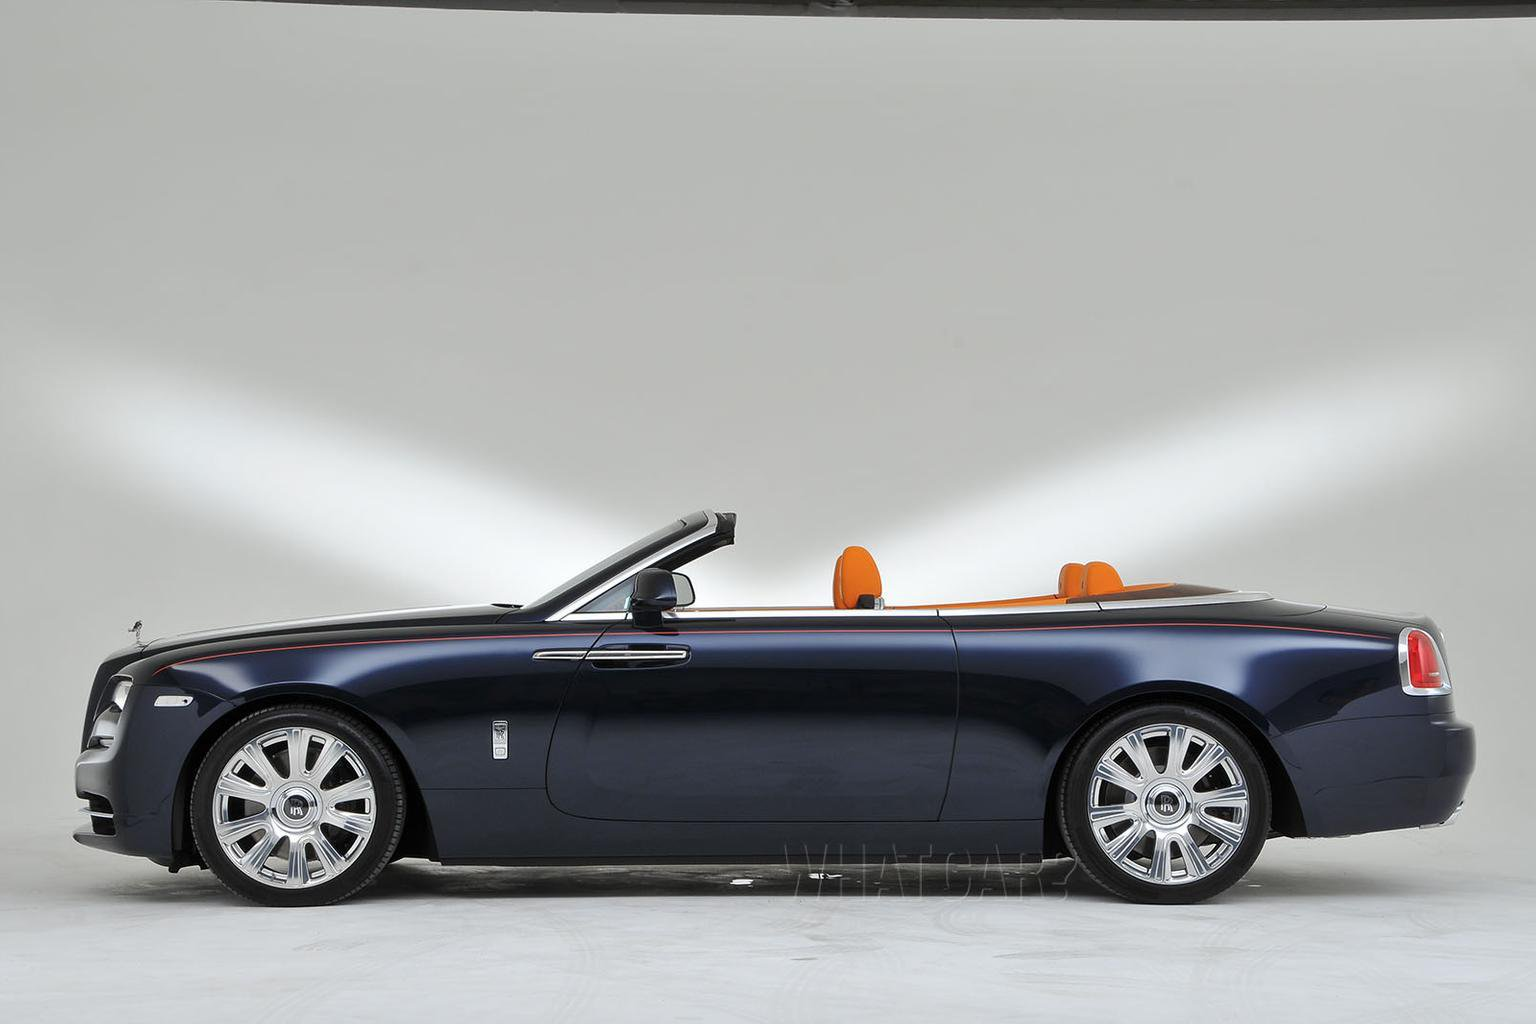 2015 Rolls-Royce Dawn revealed